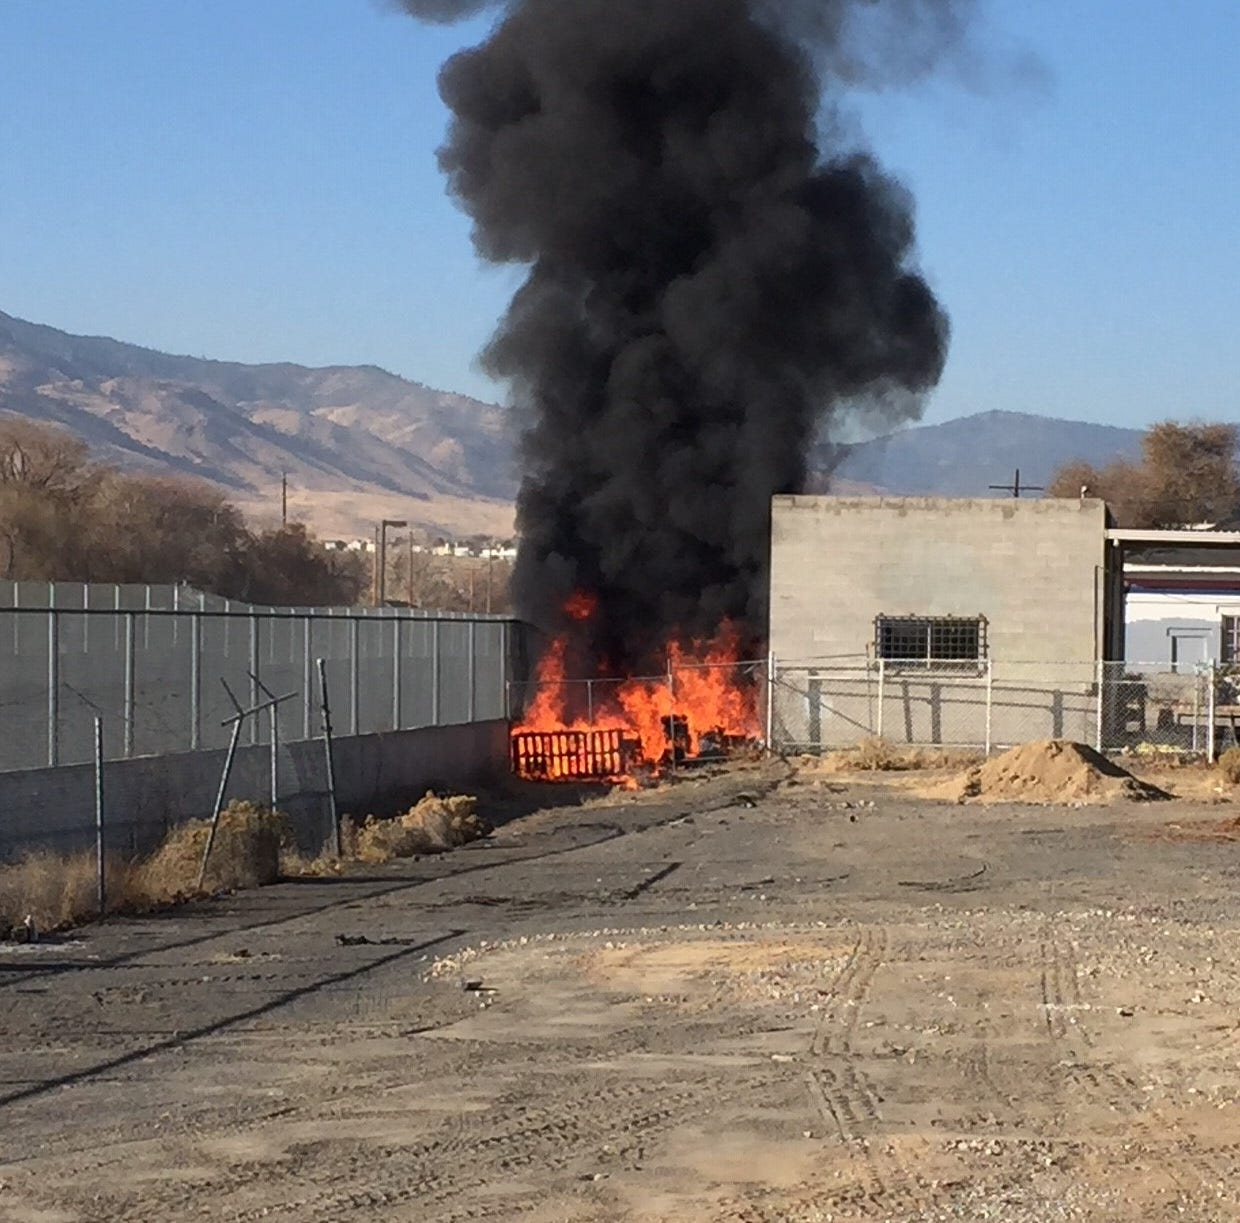 Reno firefighters extinguish blaze at homeless encampment